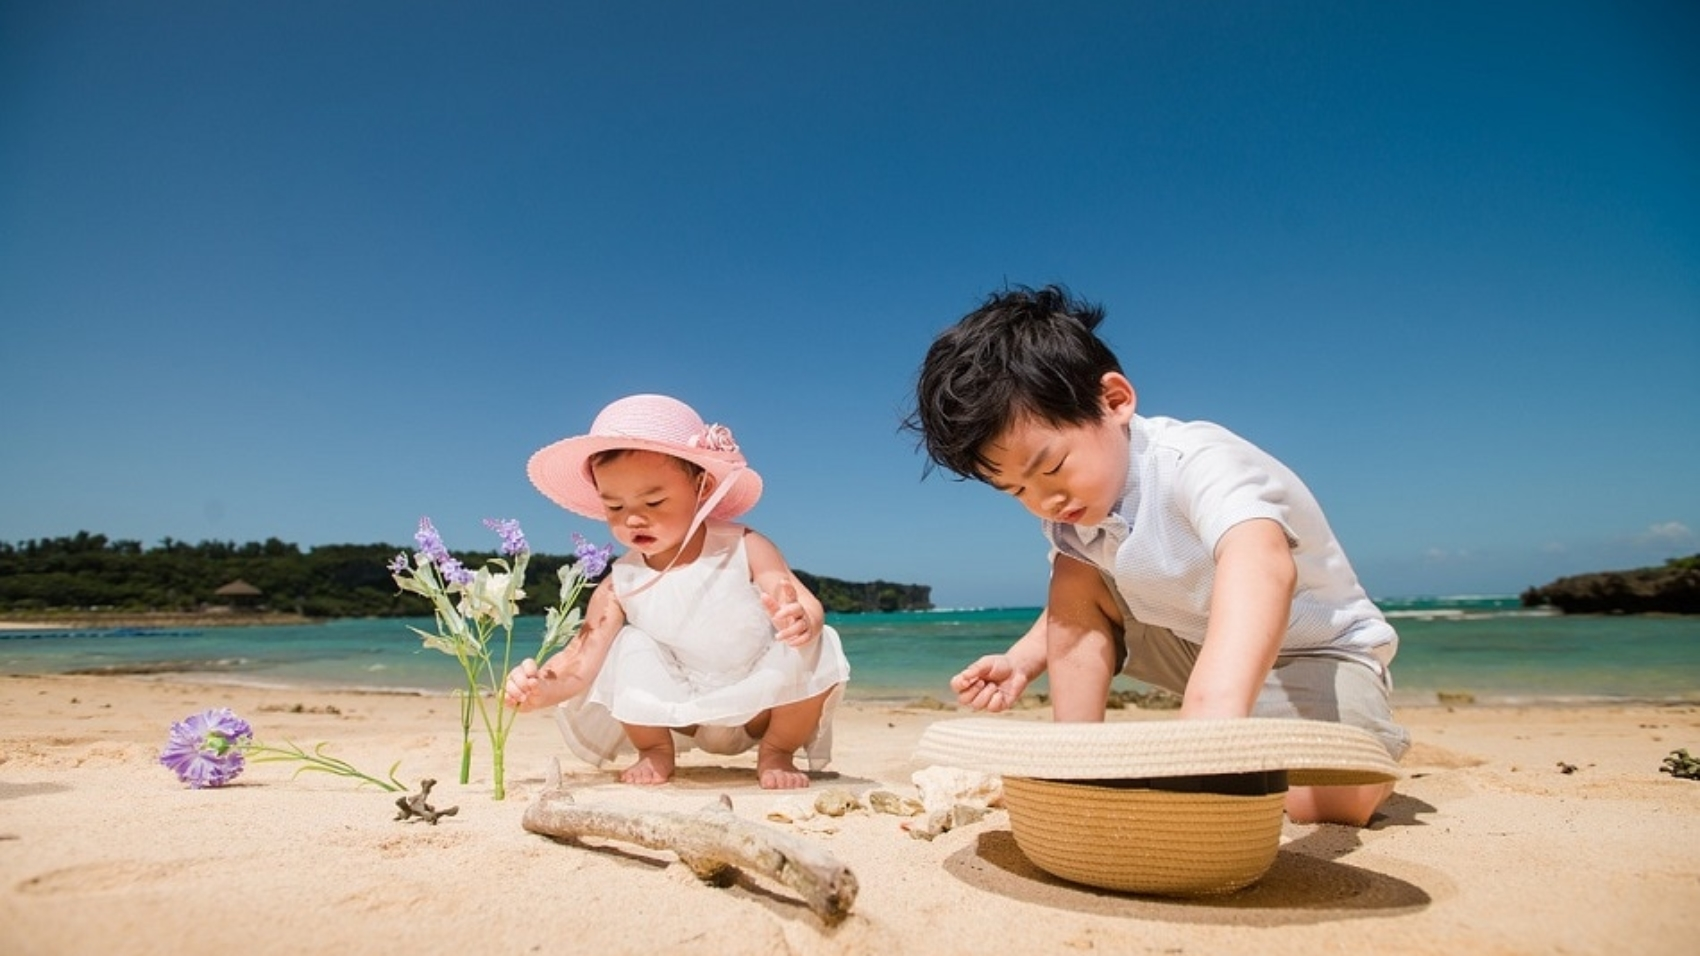 How to Make a Vacation with Kids Feel Like a Vacation